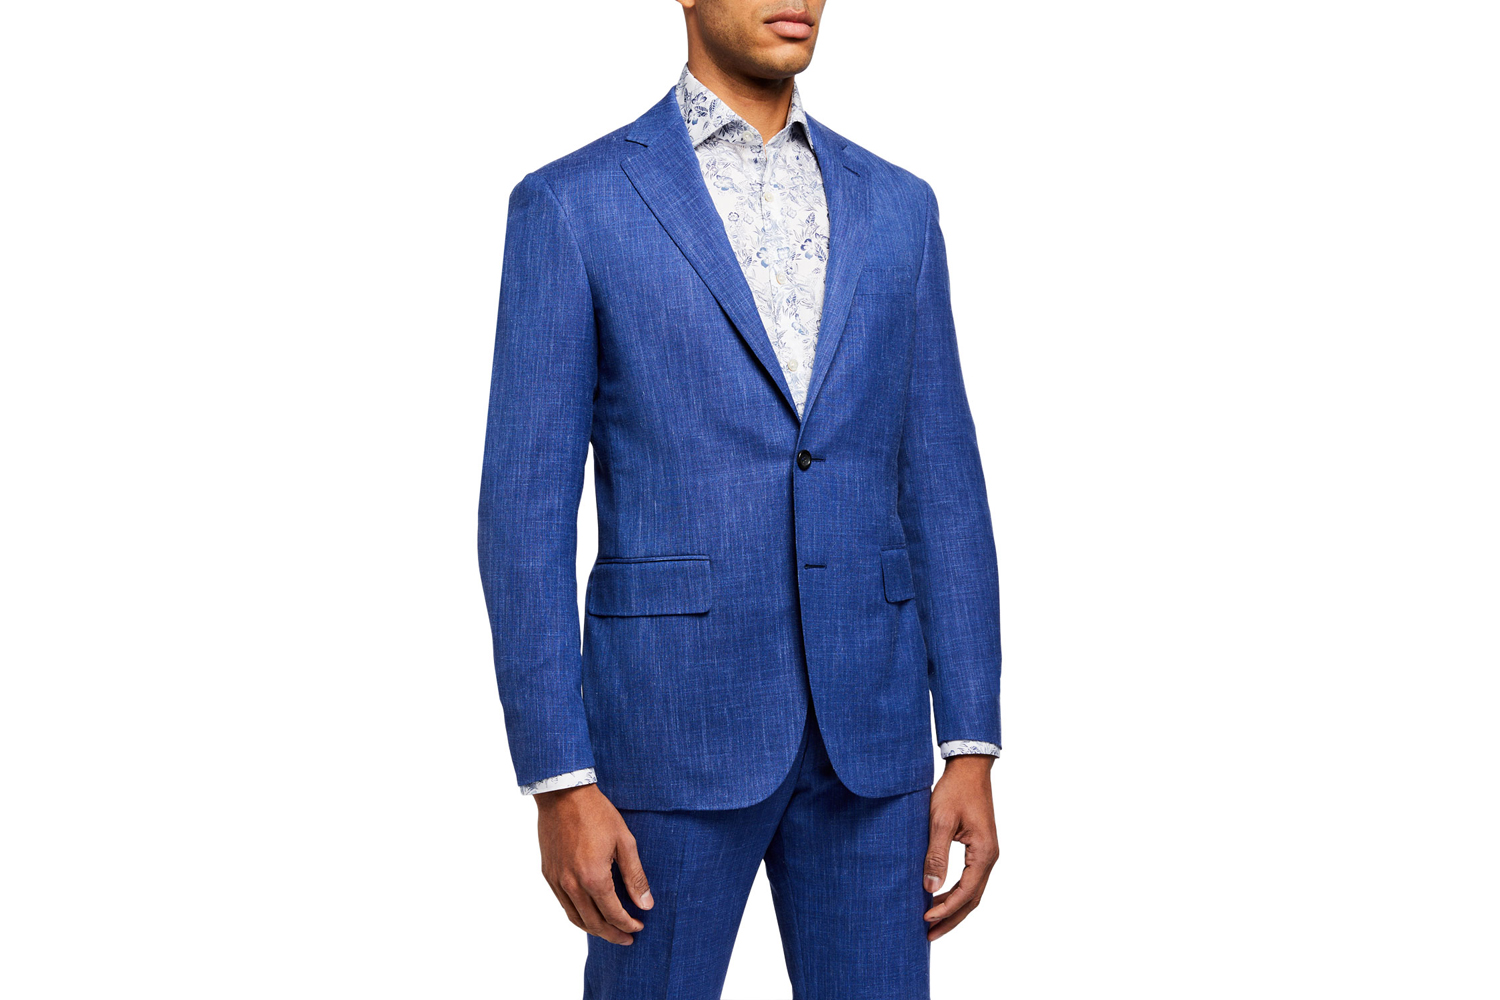 Heathered Two-Piece Suit Canali